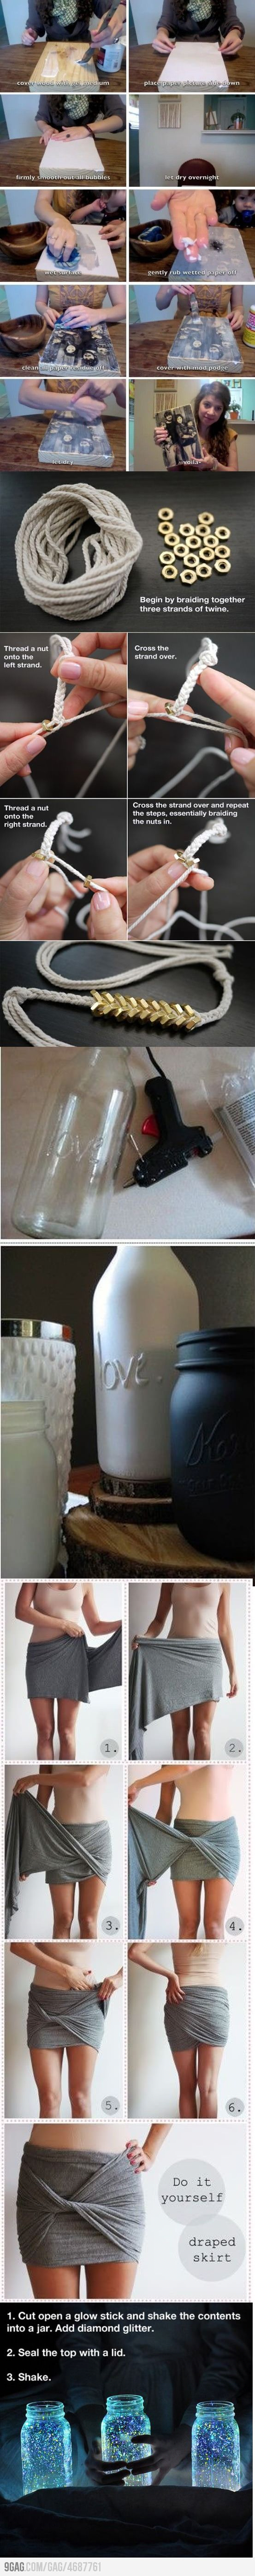 Cool do it yourself stuff - the photo on boards, glue gun and paint on bottles, and the glow stick in jar could be cool wedding things...